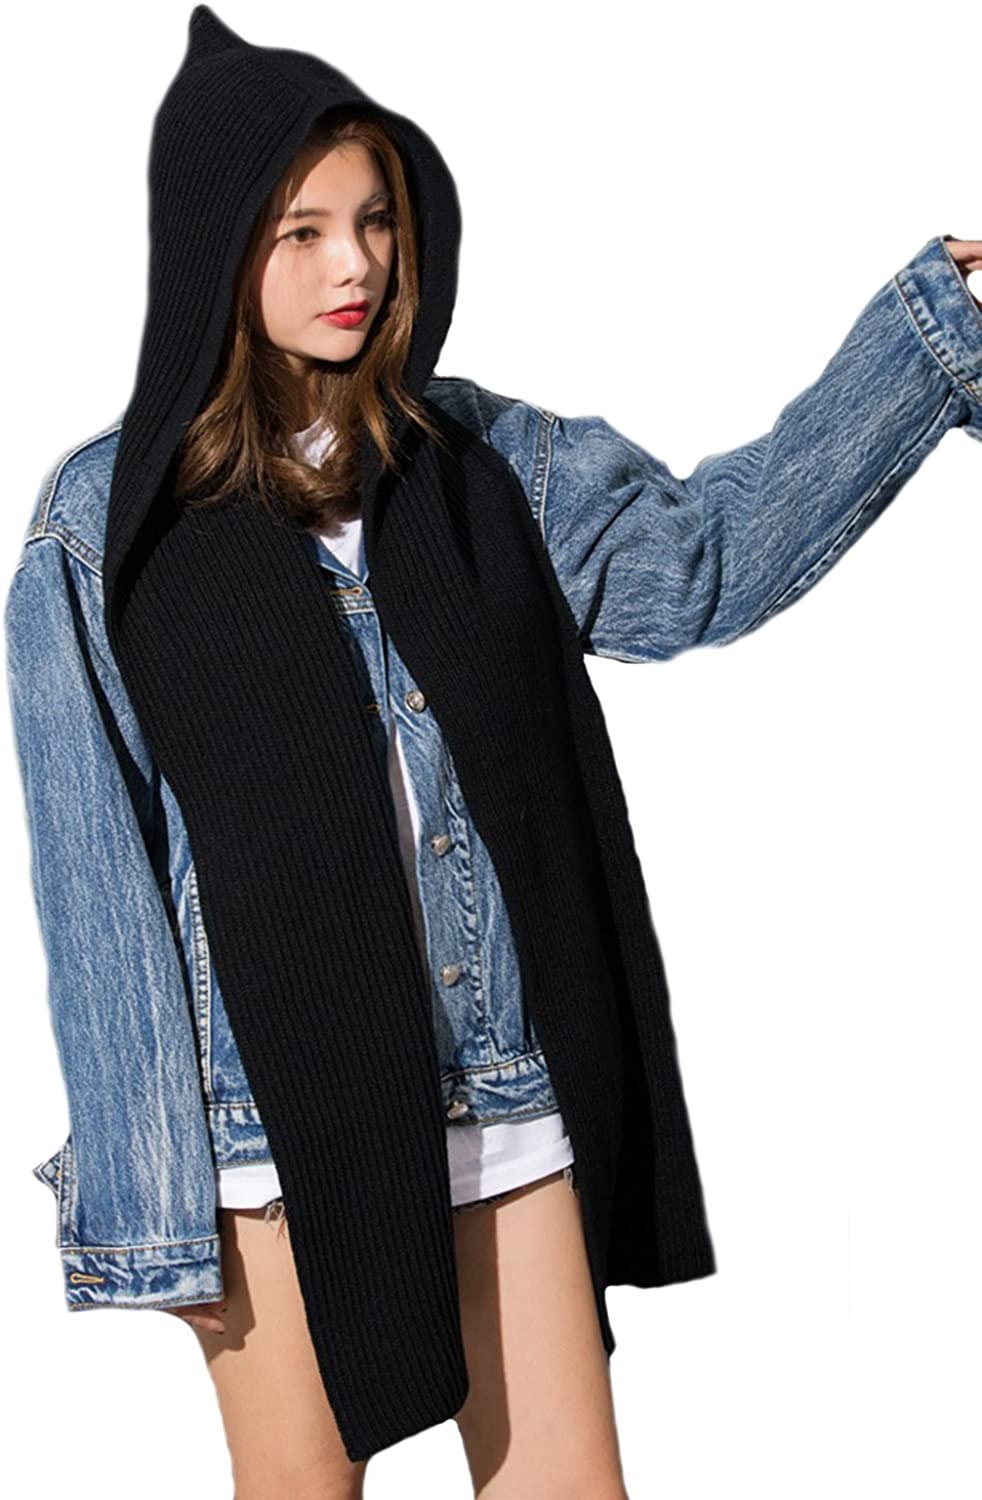 Young_Me Parent-child Winter Cheap mail order specialty store Knit Hooded Wa Neck 67% OFF of fixed price Scarf Headscarf